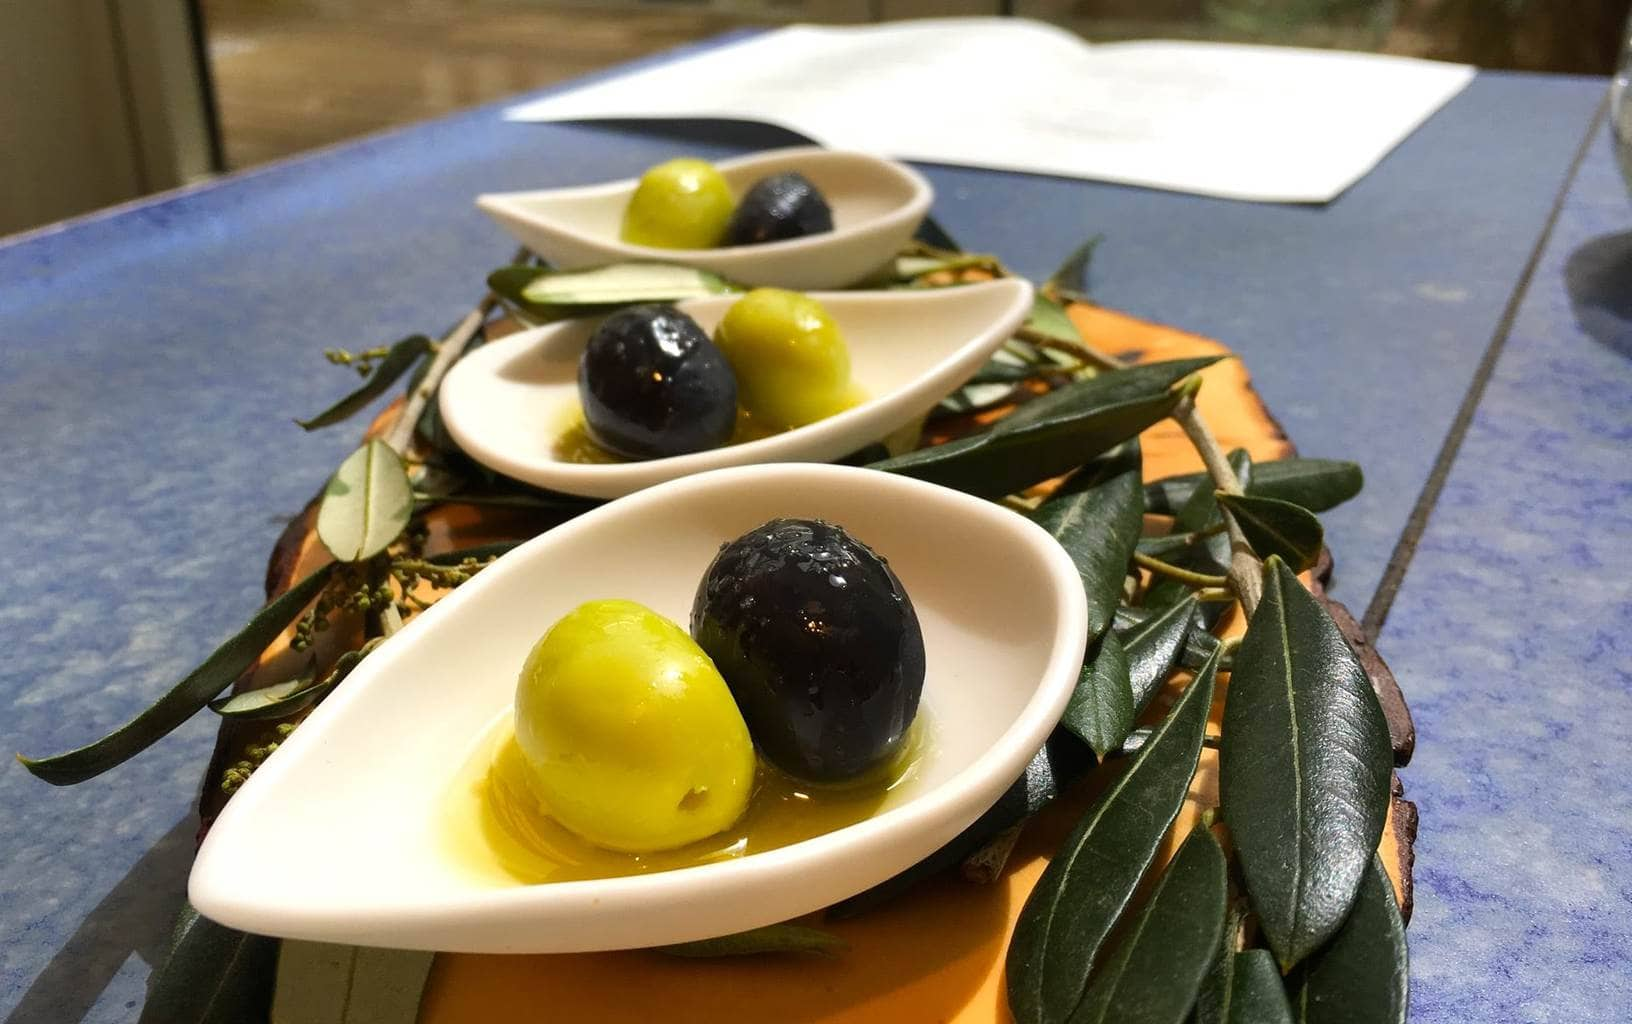 Enjoy the olive